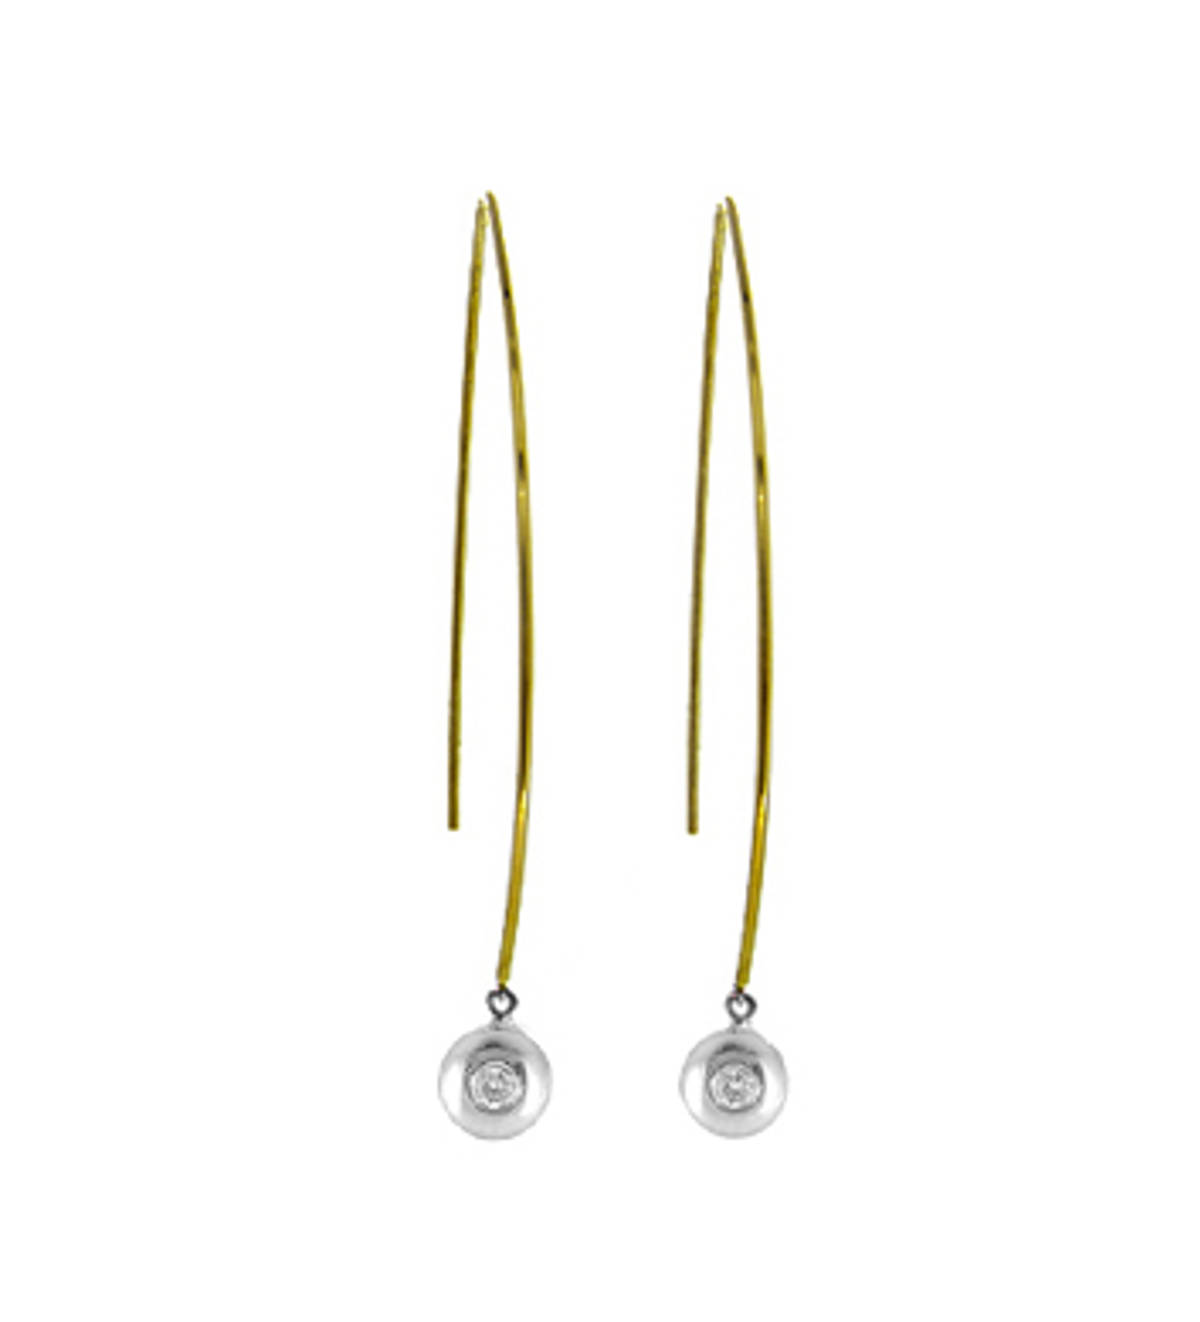 9k yellow and white gold single stone brilliant cut diamond rubover set hoop earringsDETAILSCarat: total diamond weight 0.10cts SIZE & FITThis item's measurements are:Drop  6.3cm